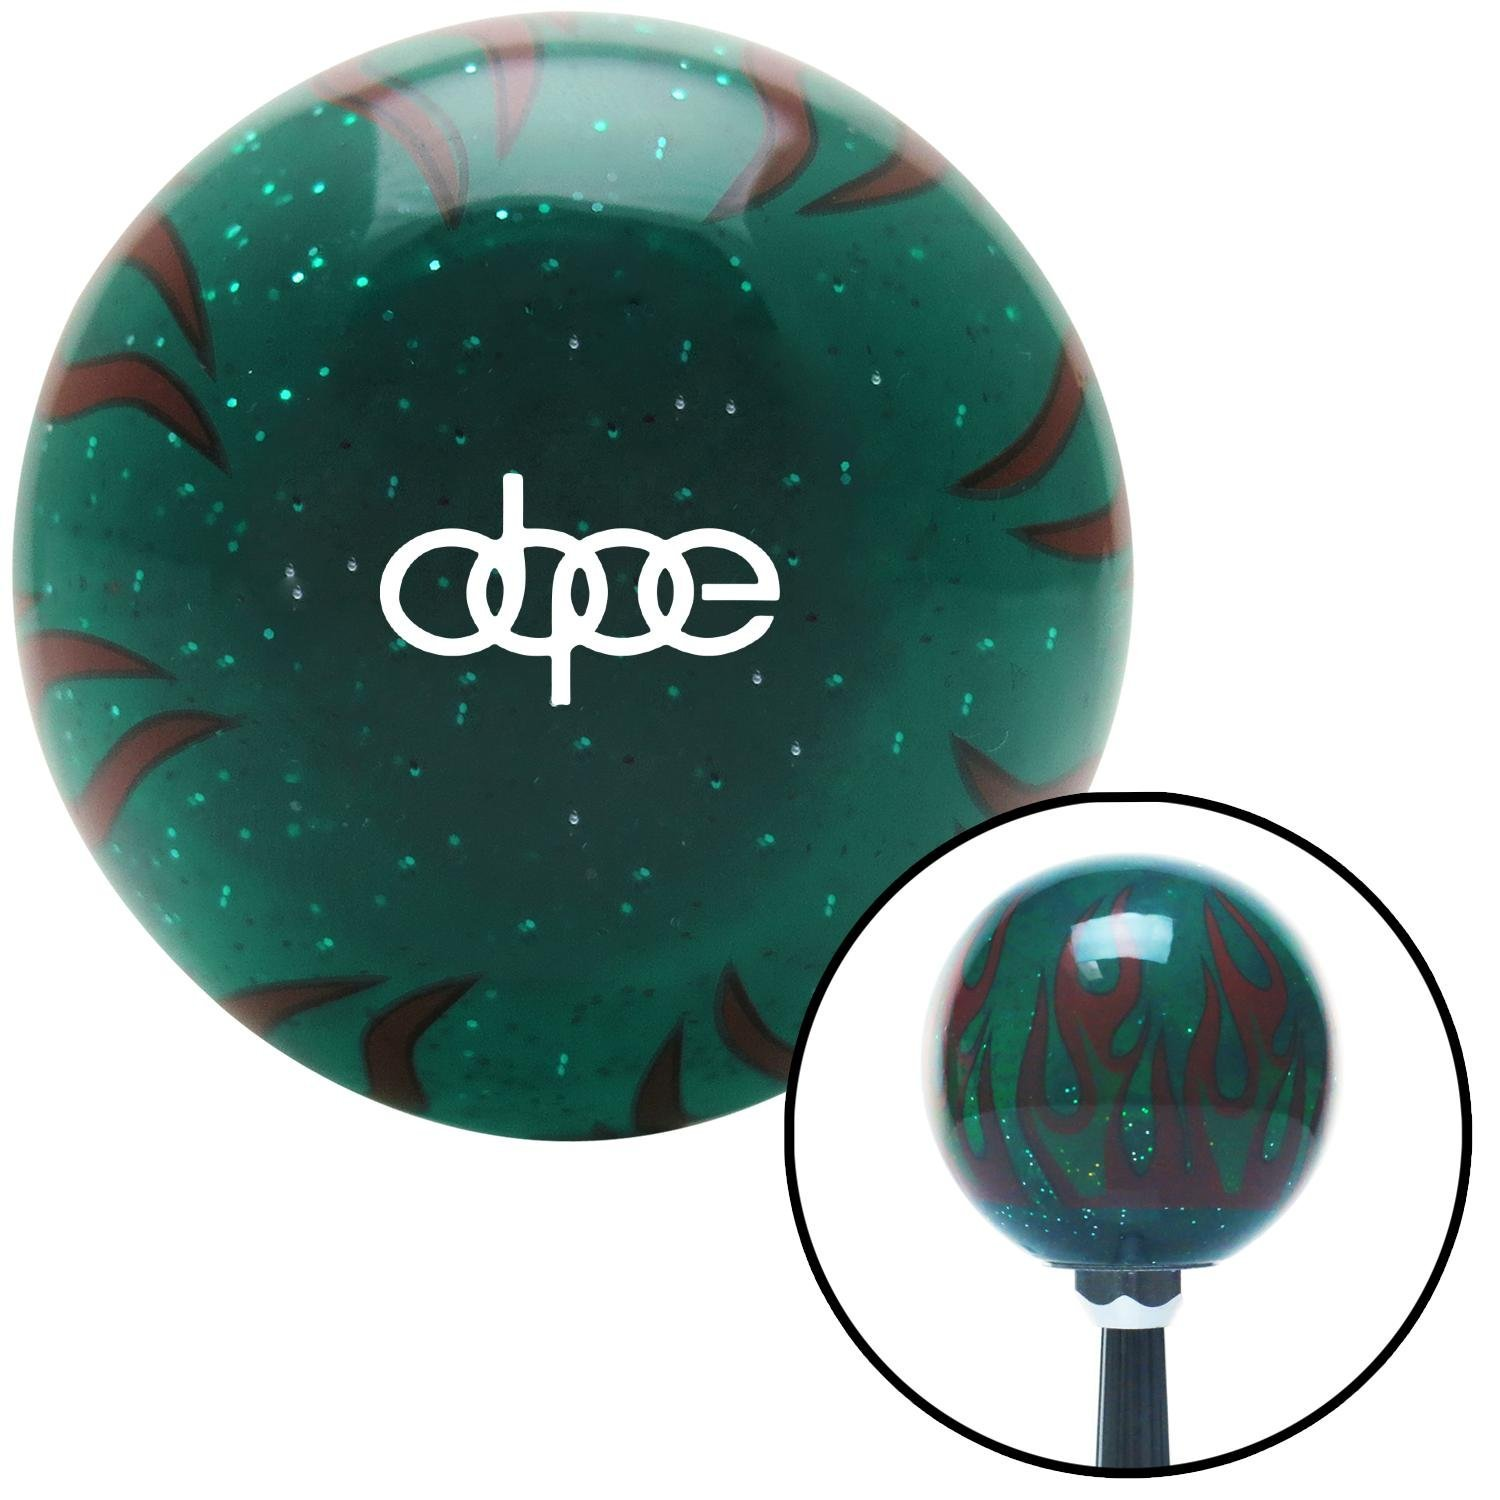 American Shifter 300908 Shift Knob White Dope Green Flame Metal Flake with M16 x 1.5 Insert